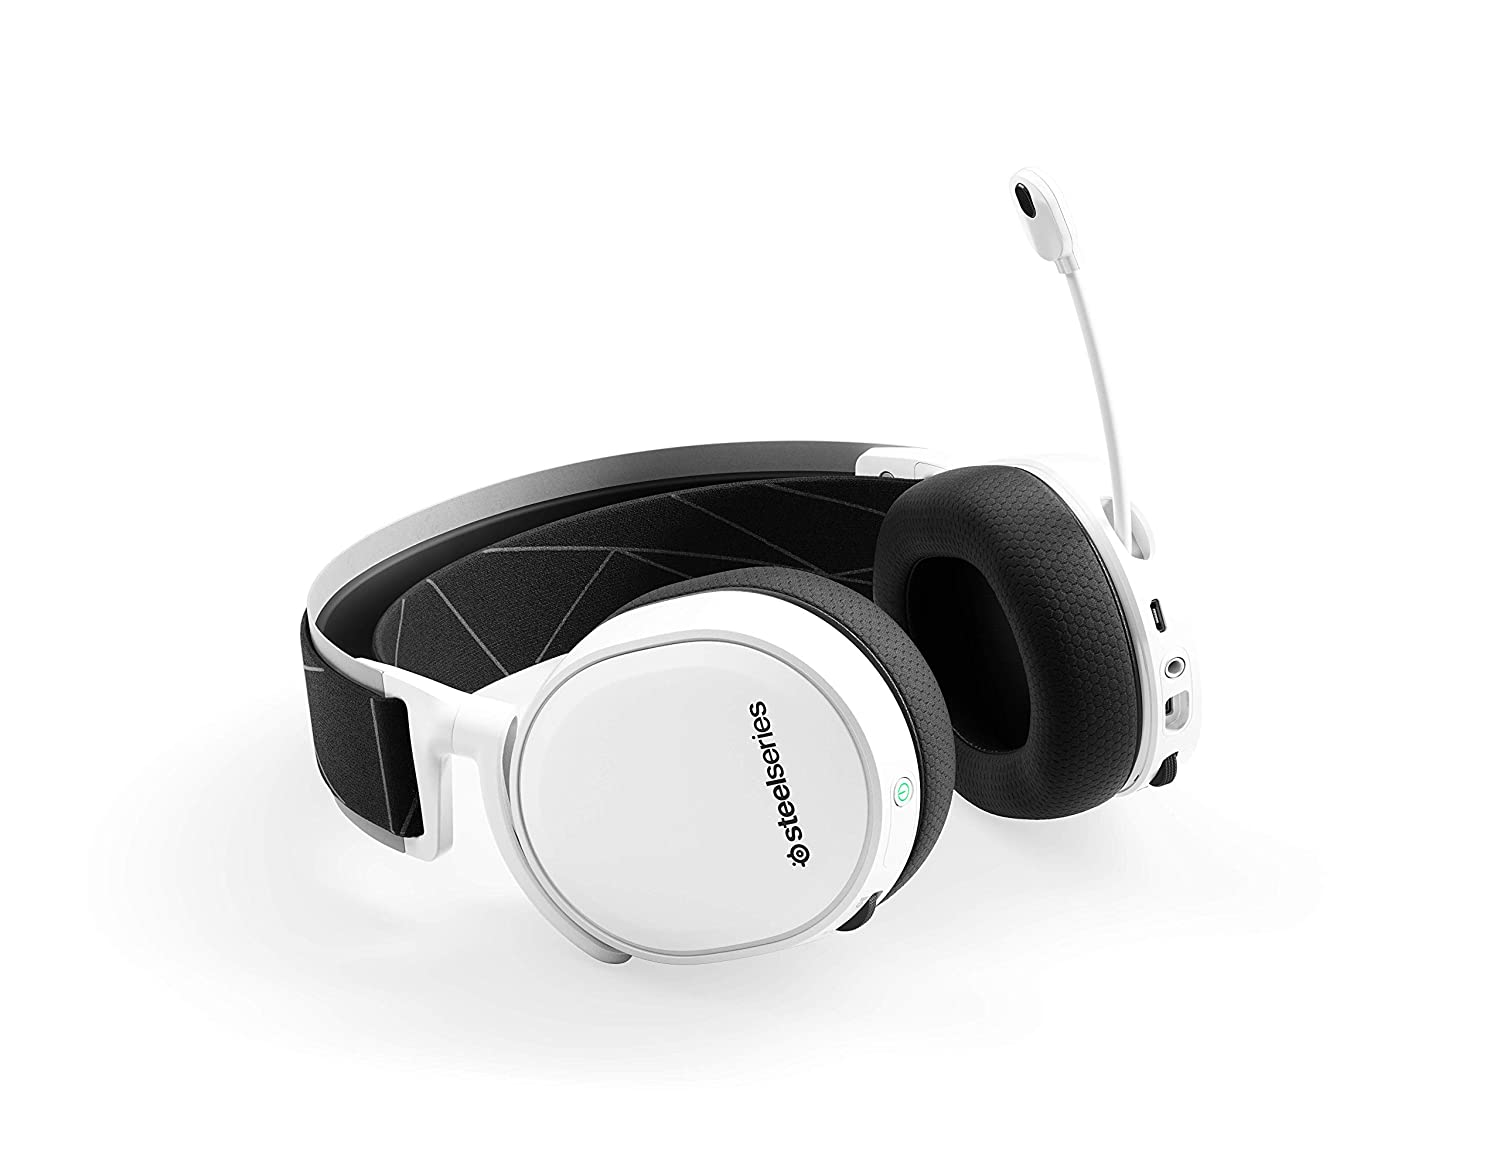 White SteelSeries Arctis 5 2019 Edition RGB Illuminated Gaming Headset with DTS Headphone:X v2.0 Surround for PC and PlayStation 4